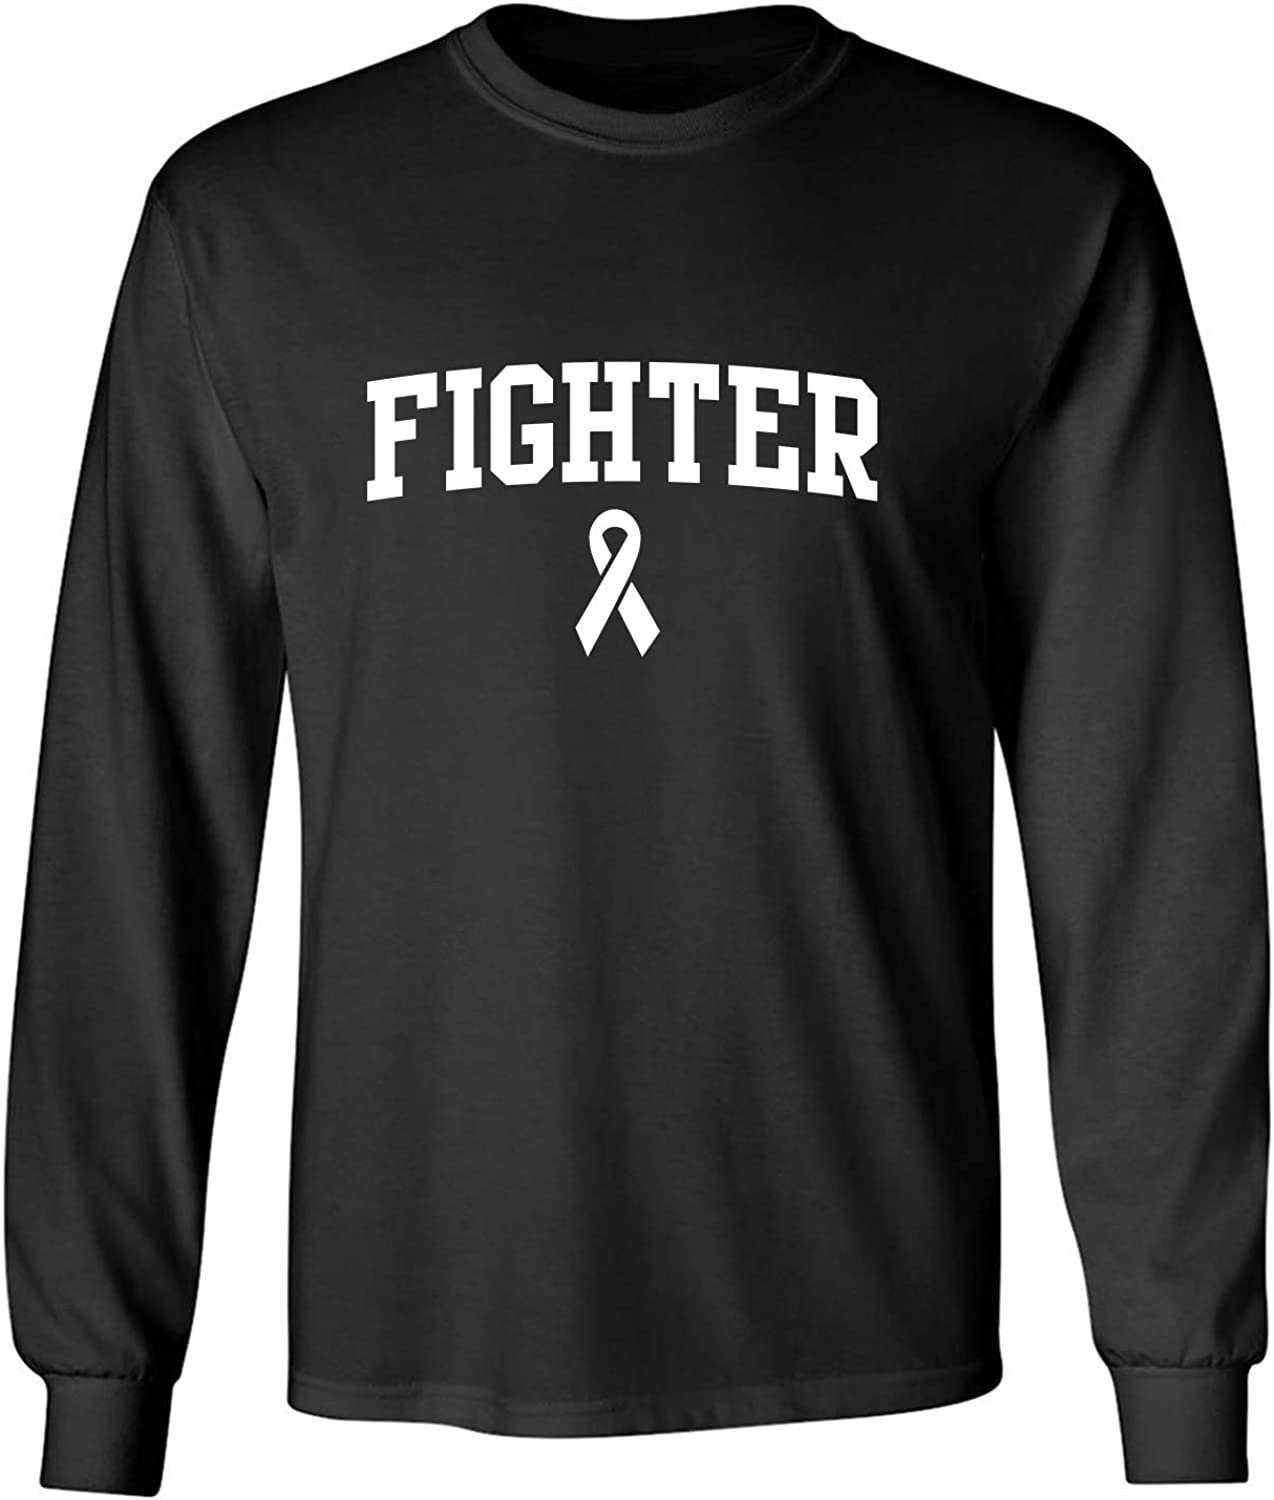 Fighter Ribbon Adult Long Sleeve T-Shirt in Black - XXXXX-Large